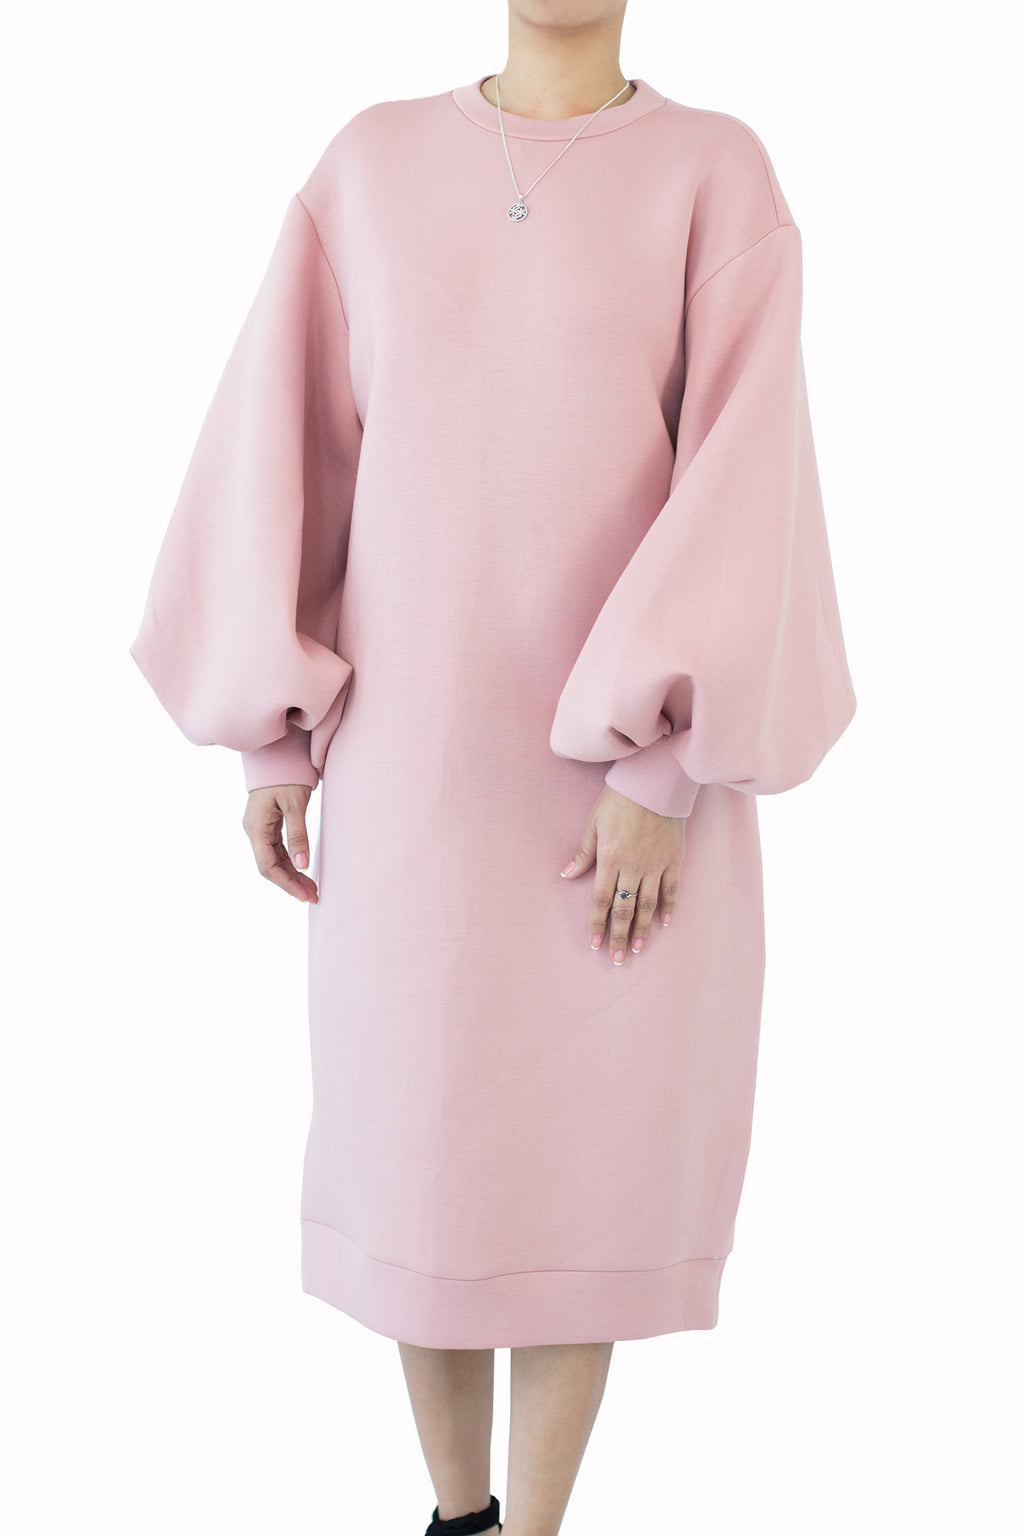 Kiswah - Puff Sleeve Long dress Free Size